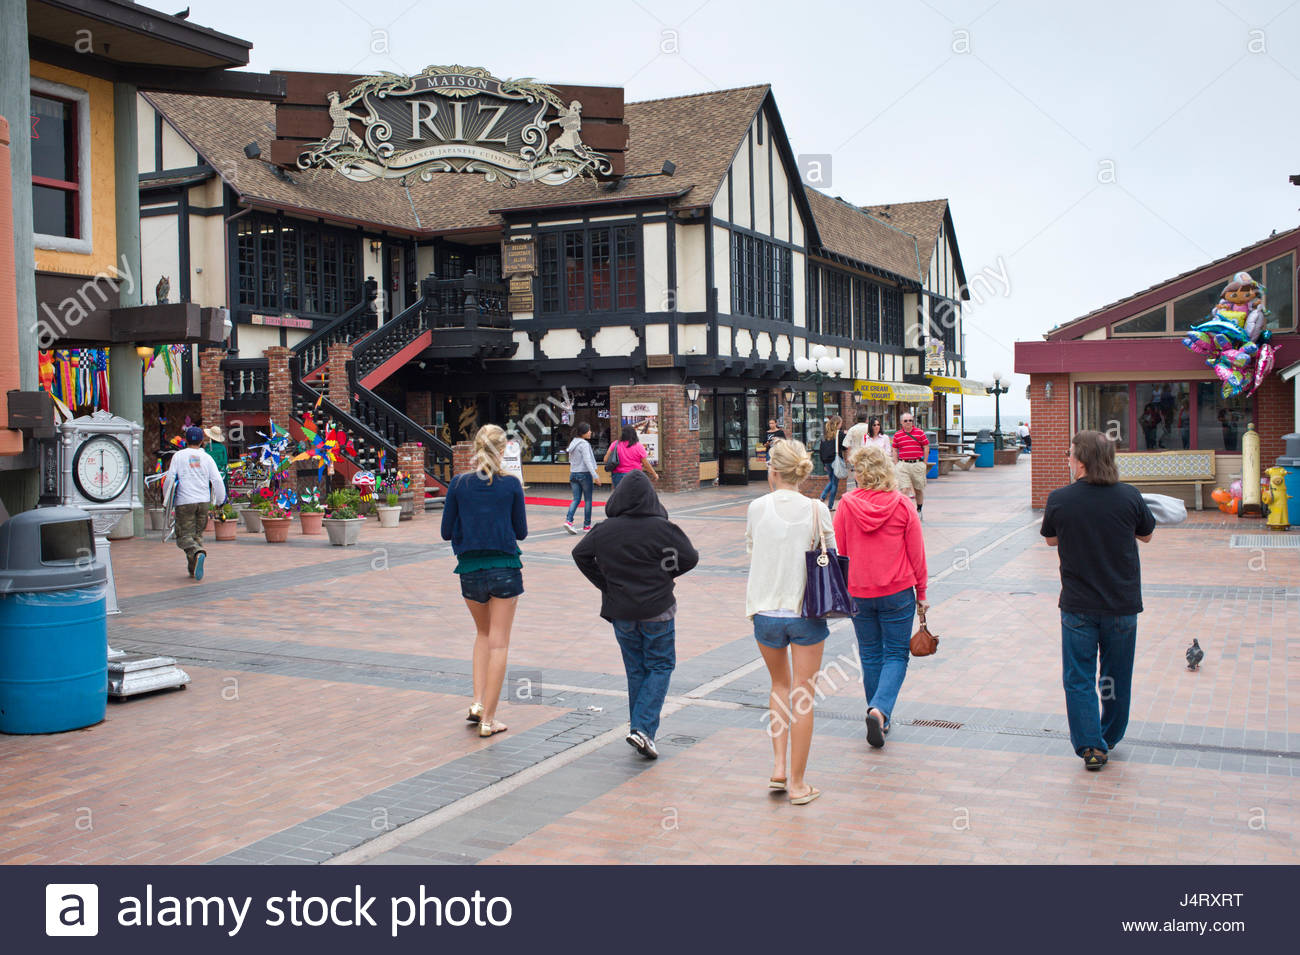 People Walking Past Shops And Restaurants On Redondo Beach